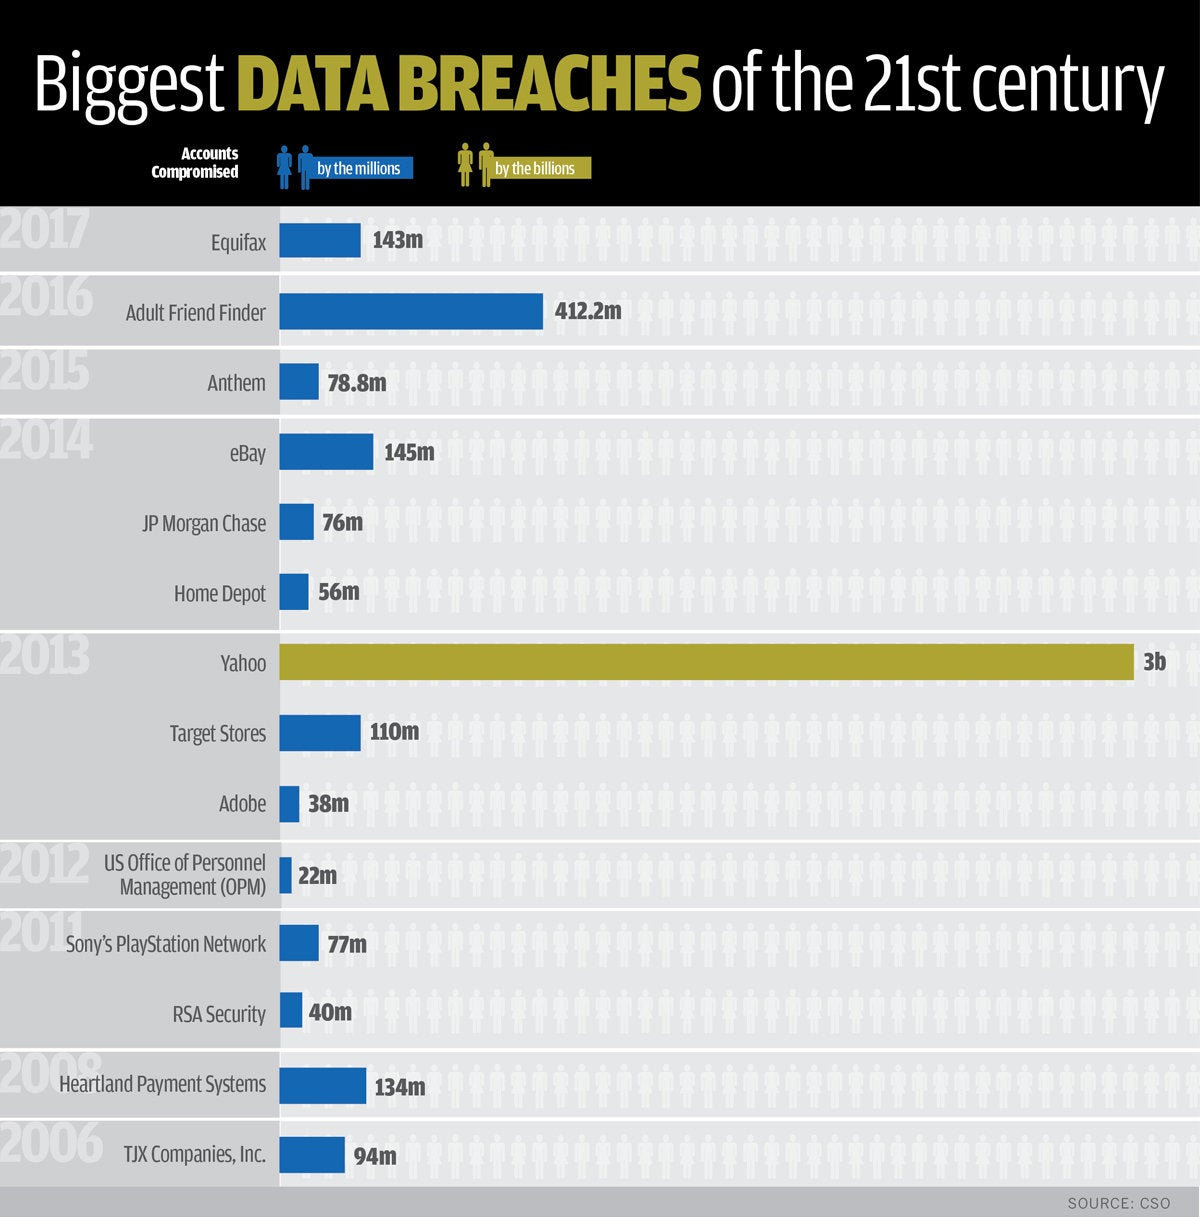 biggest data breaches by year and accounts compromised 1